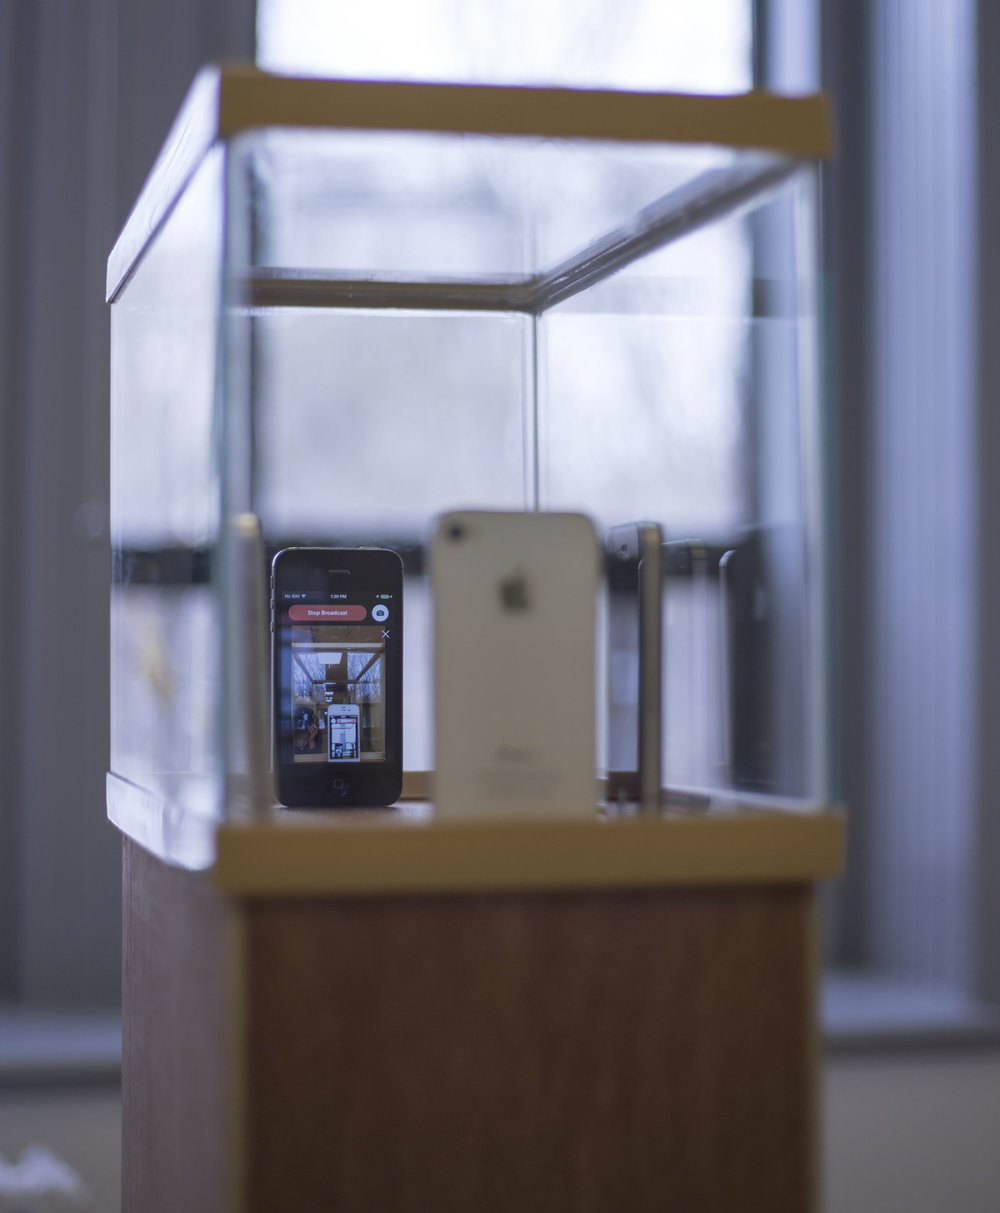 2KelseySHORE2016Omiphone(iphones,powerchords,plinth,fishtank,tablet)Uottawa5.5'x1.5'x1'.jpg